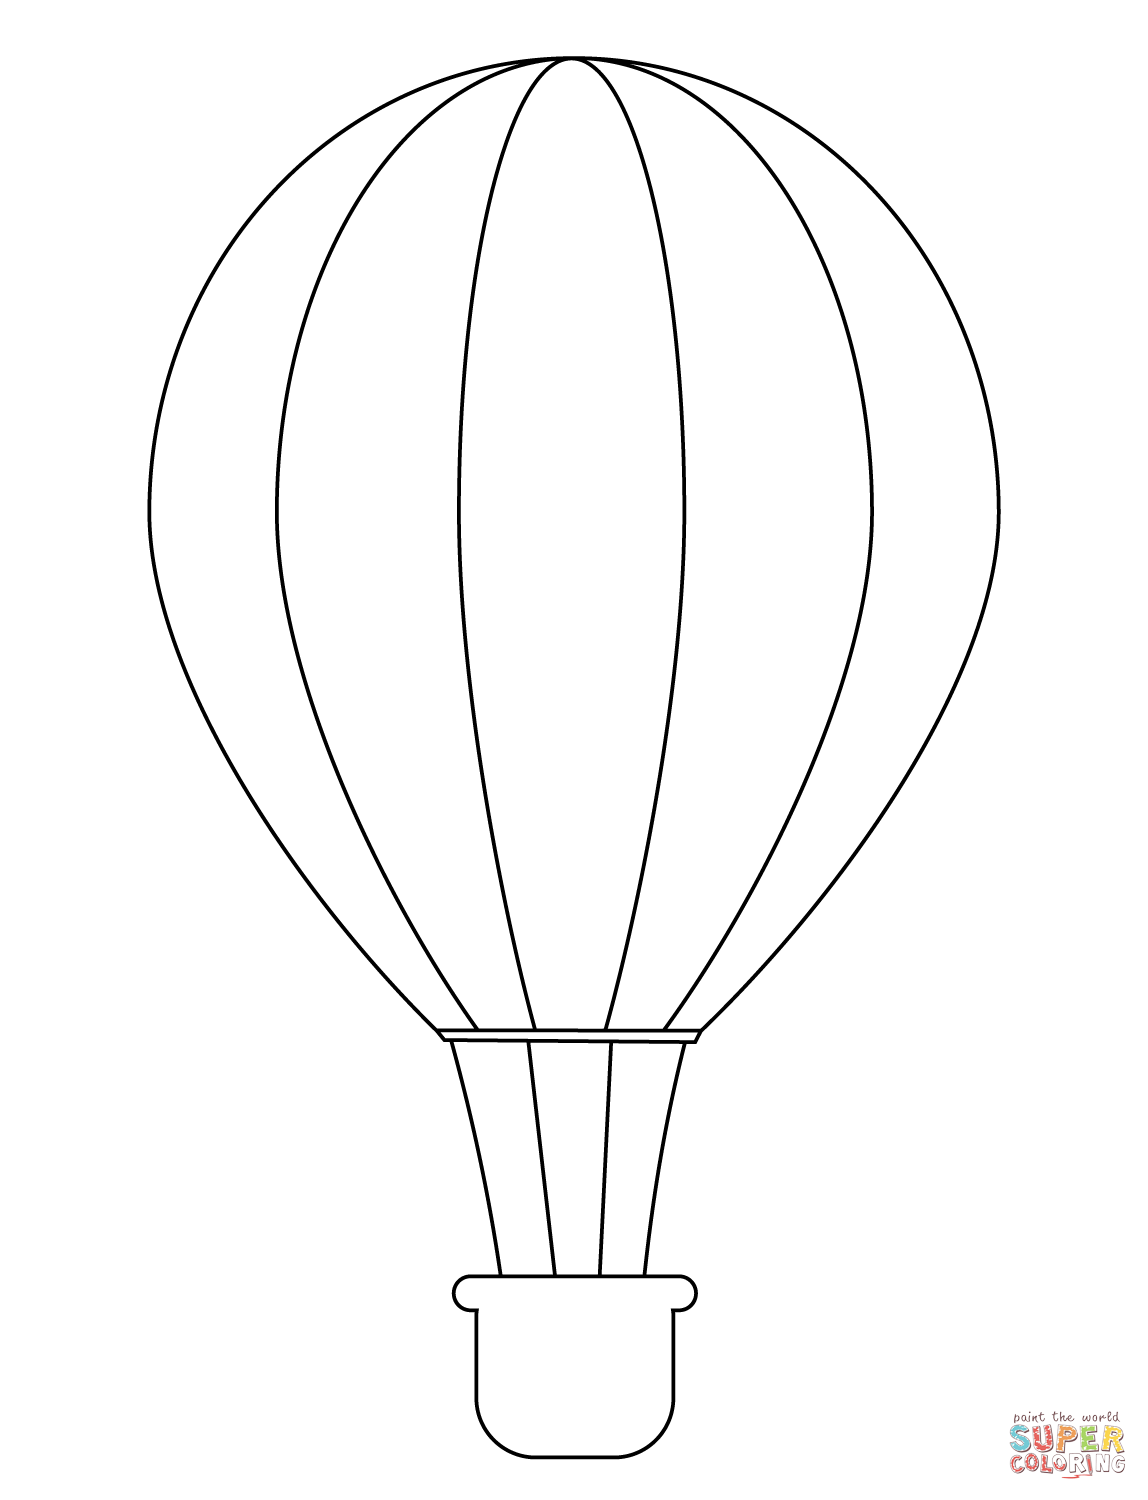 Hot Air Balloon Drawing Template At Getdrawings Com Free For